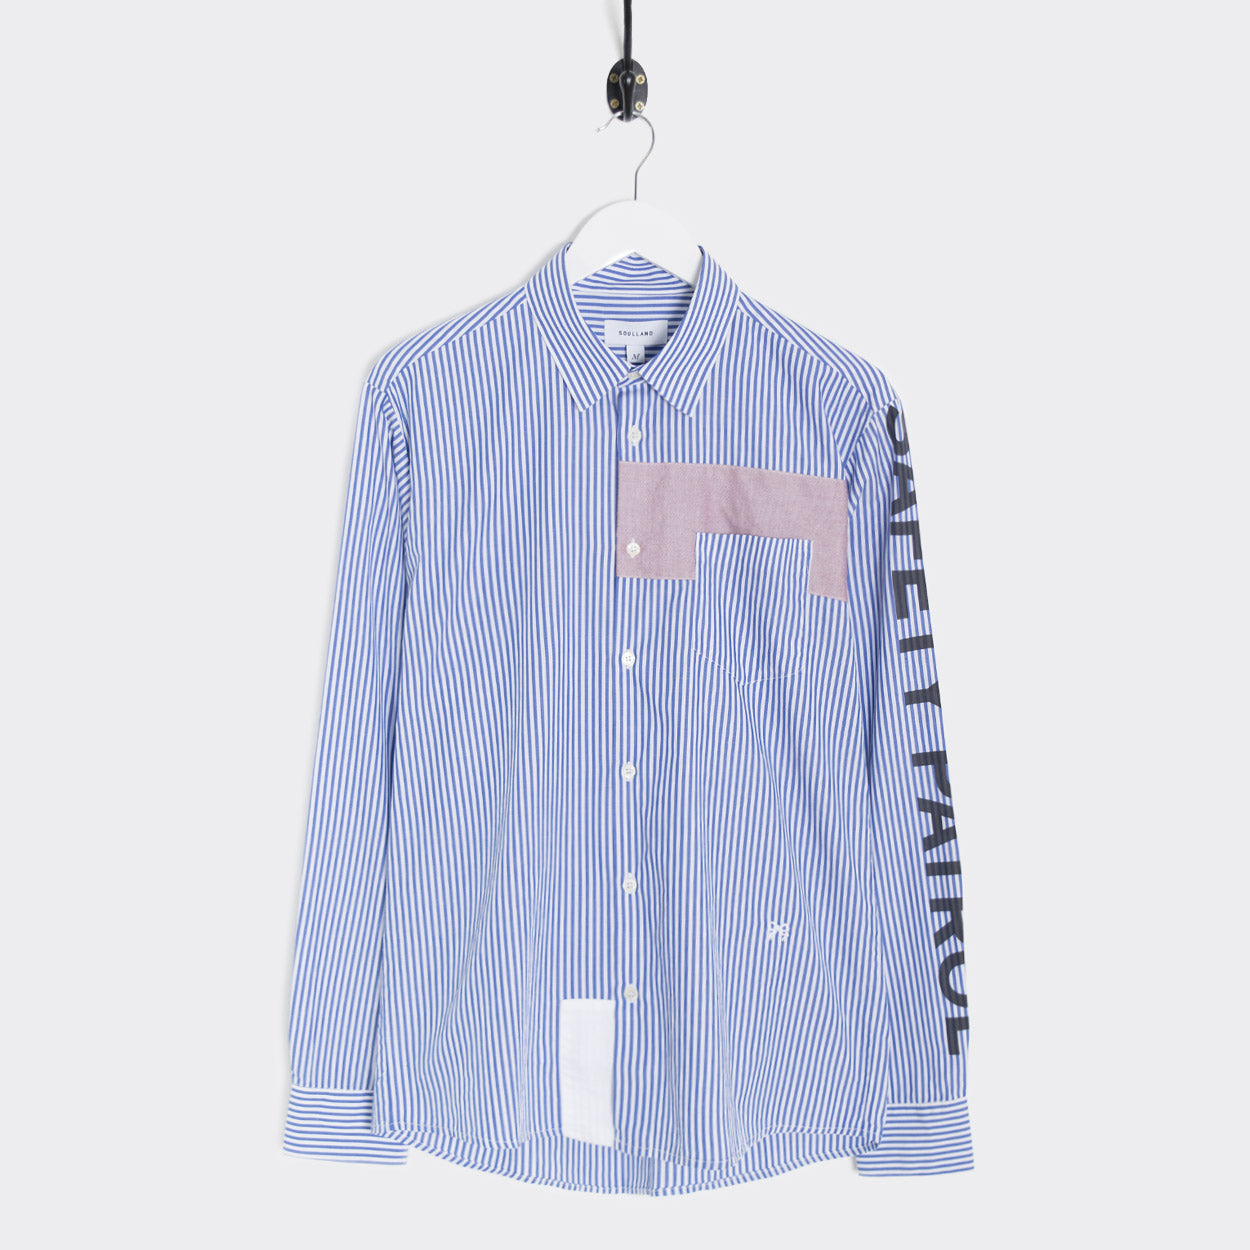 Soulland Wilcher Shirt - Navy Stripes